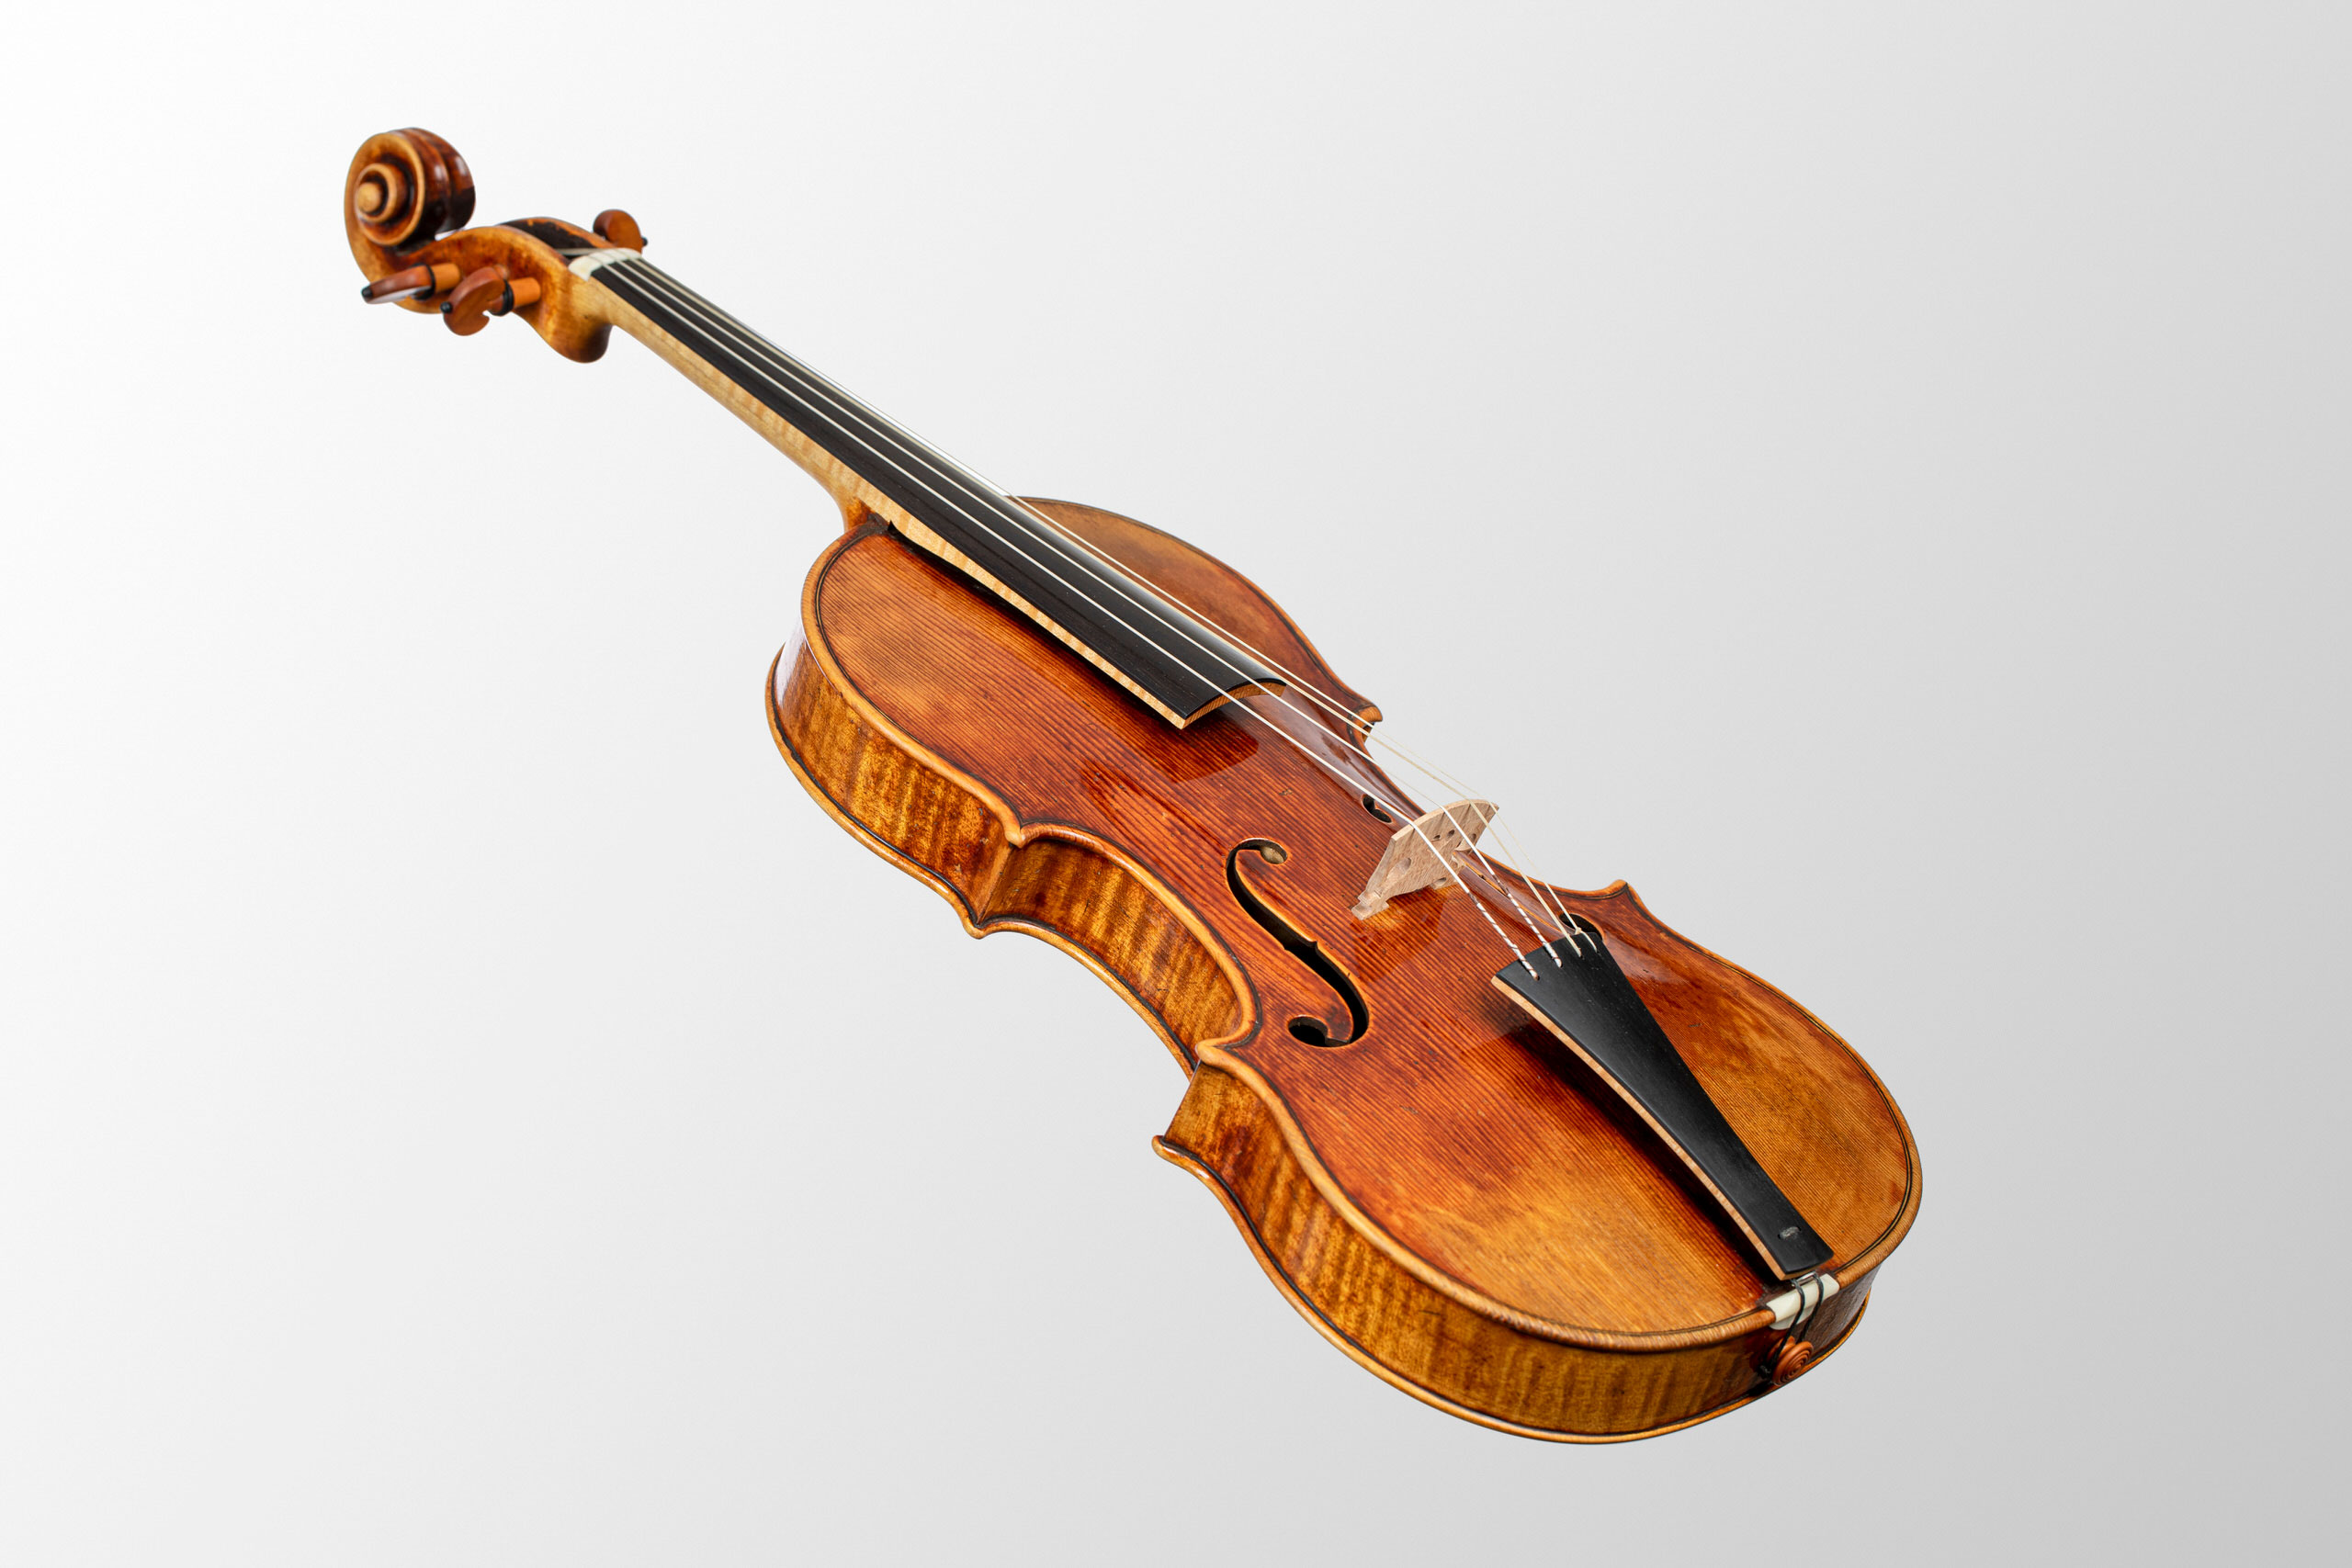 Violí Barroc Eduard Sitjas 2019, model inspirat en 'Pietro Guarneri of Matua,1704'